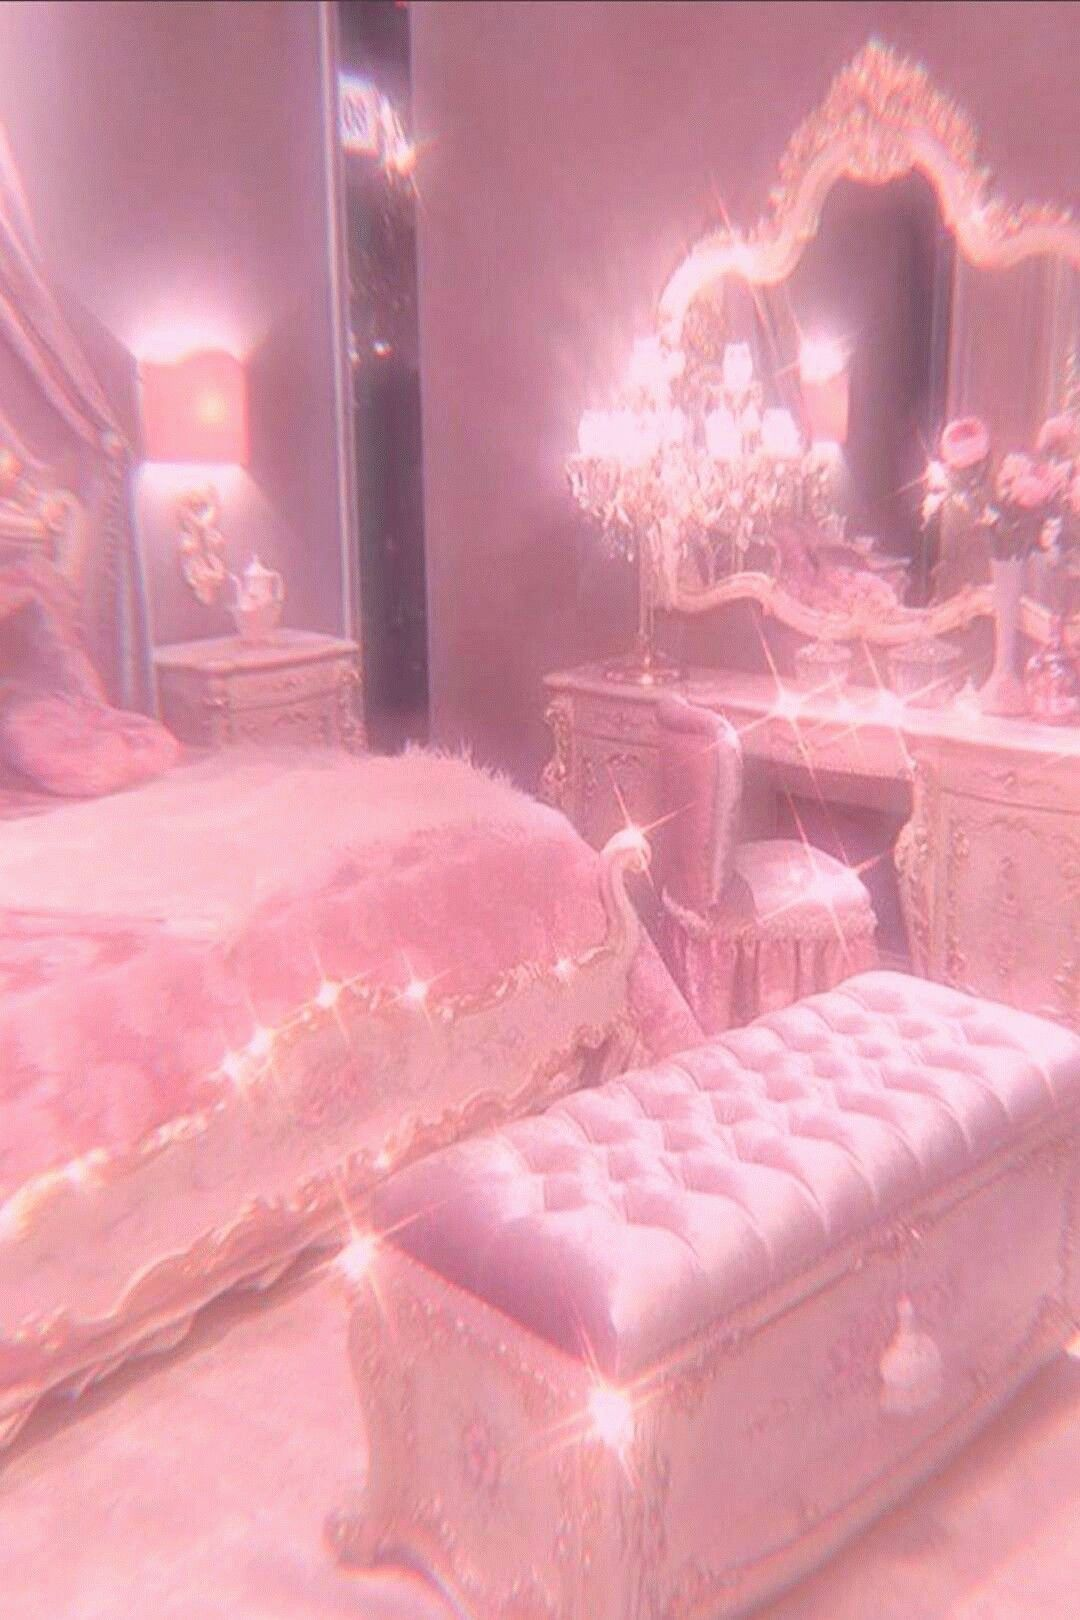 Pin By Arene Colon On Pink In 2021 Green Bedroom Decor Photo Walls Bedroom Pink Wallpaper Luxury pink aesthetic room